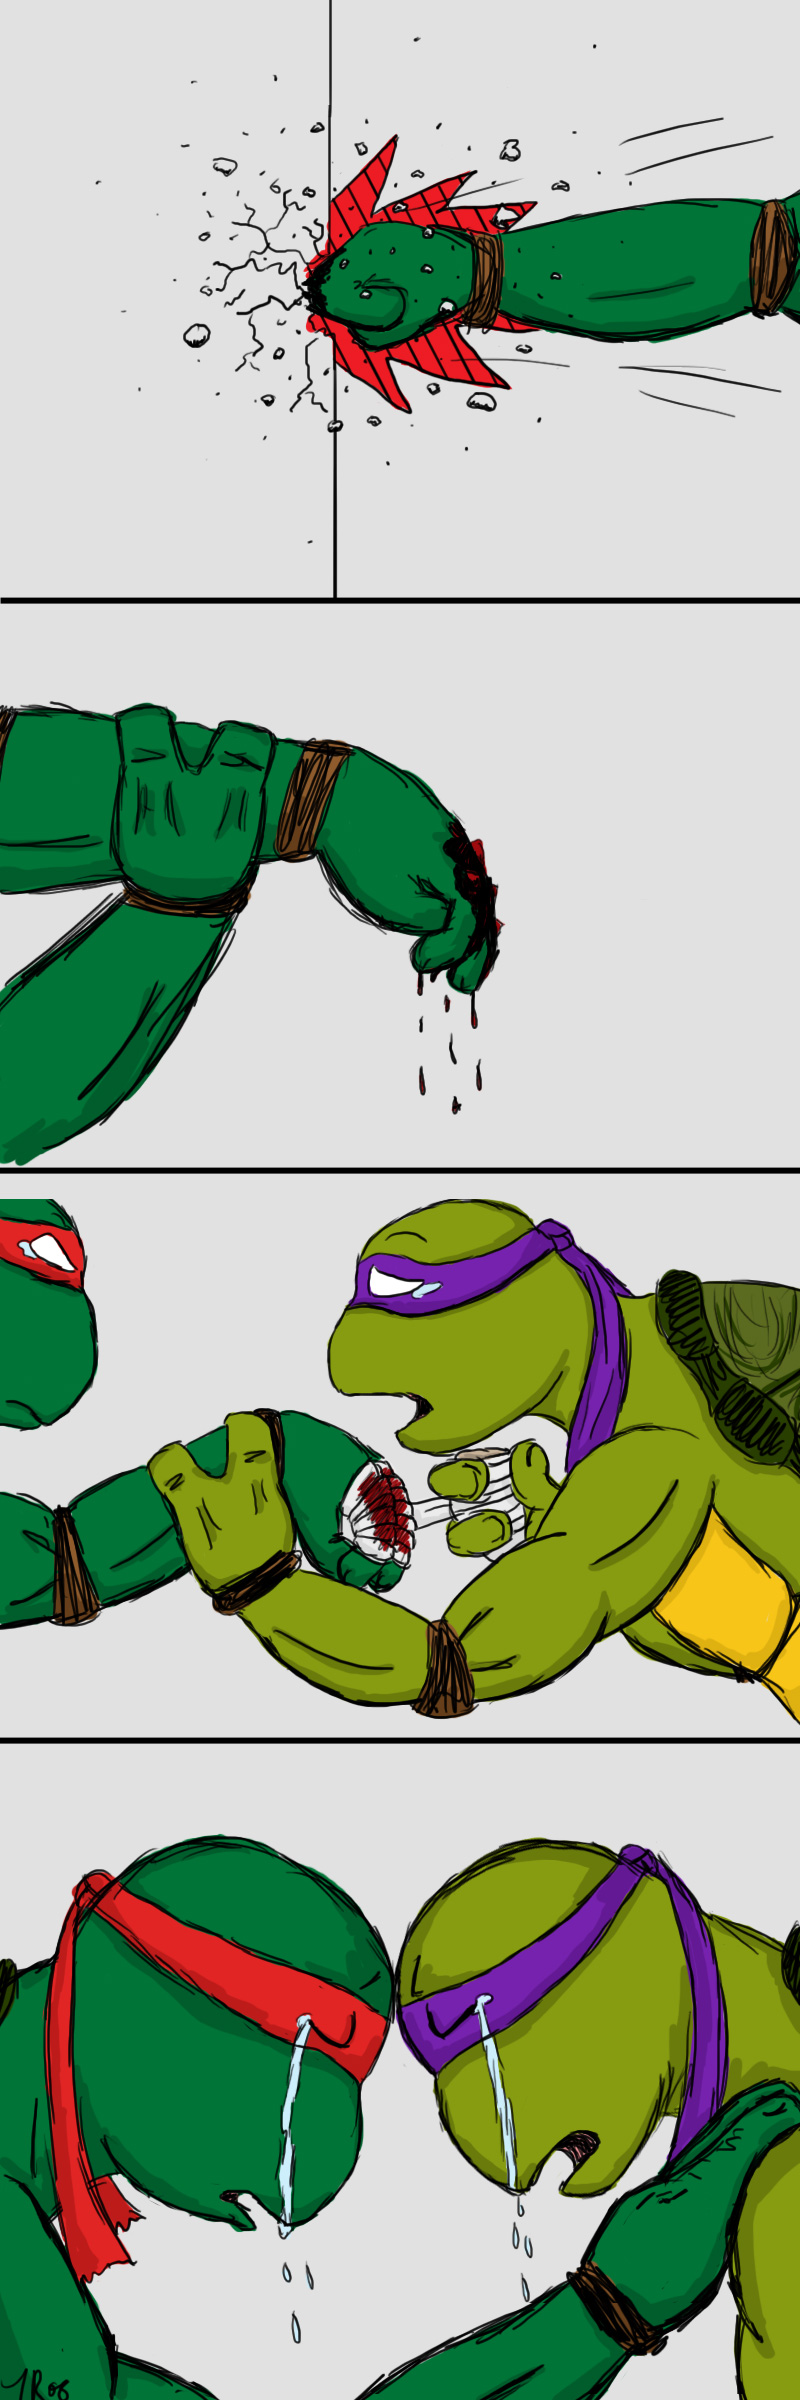 Raph And Donnie By Luckycyberbunny On Deviantart